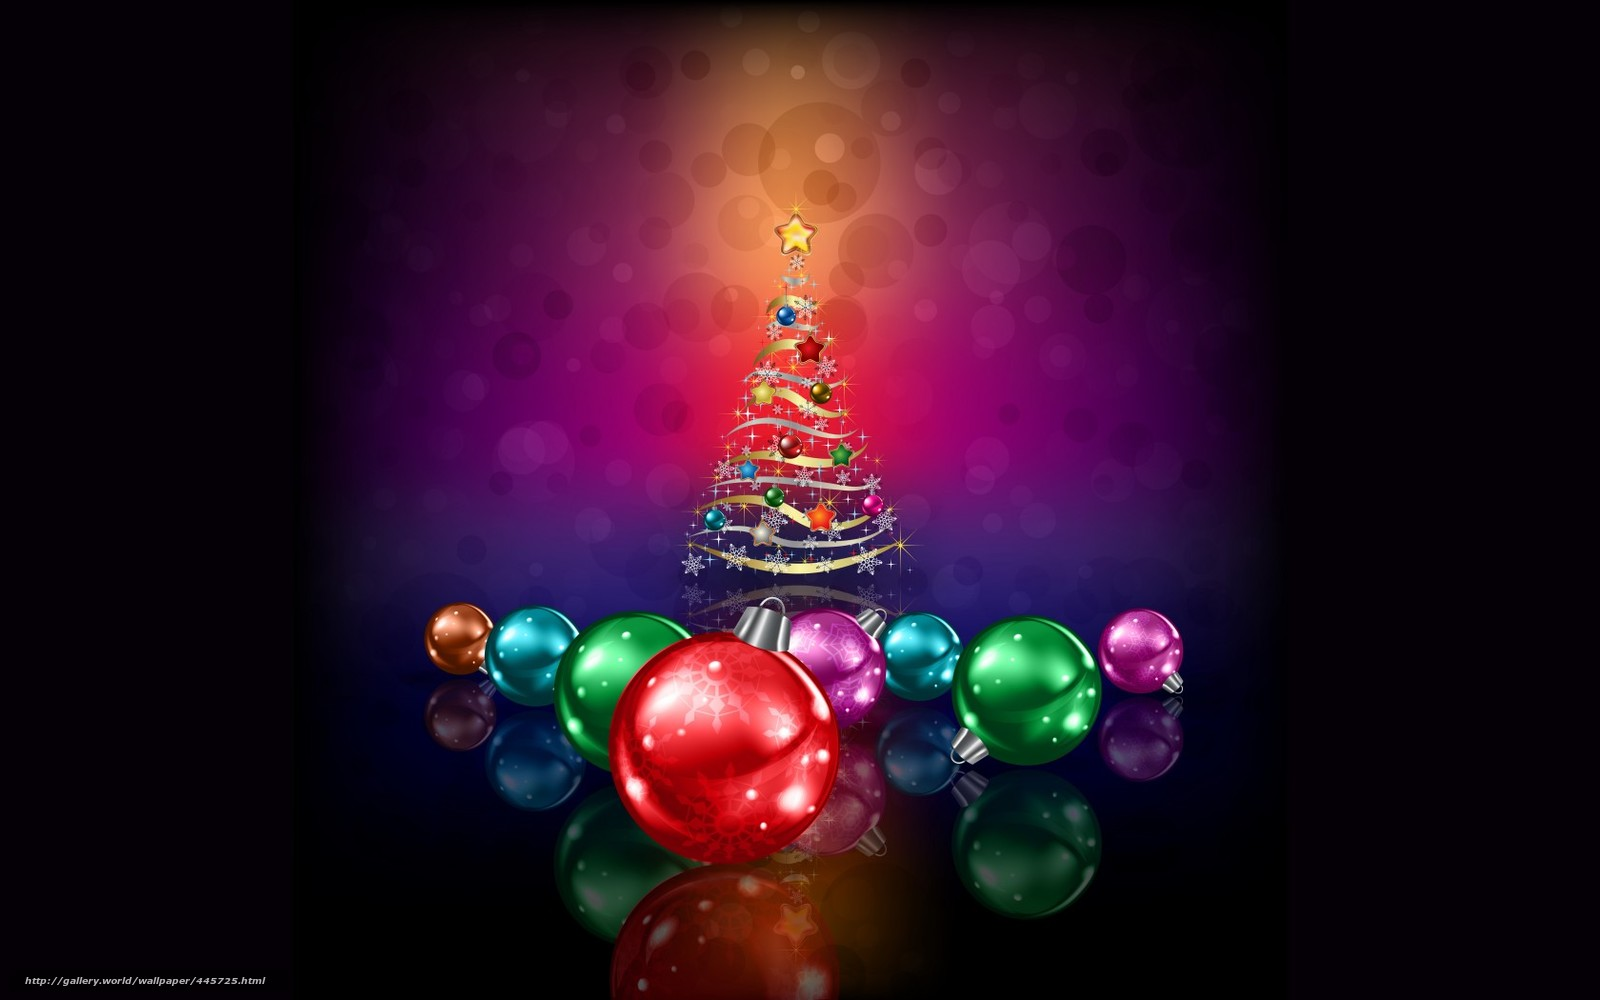 Download wallpaper christmas decorations tree holiday for Find christmas decorations